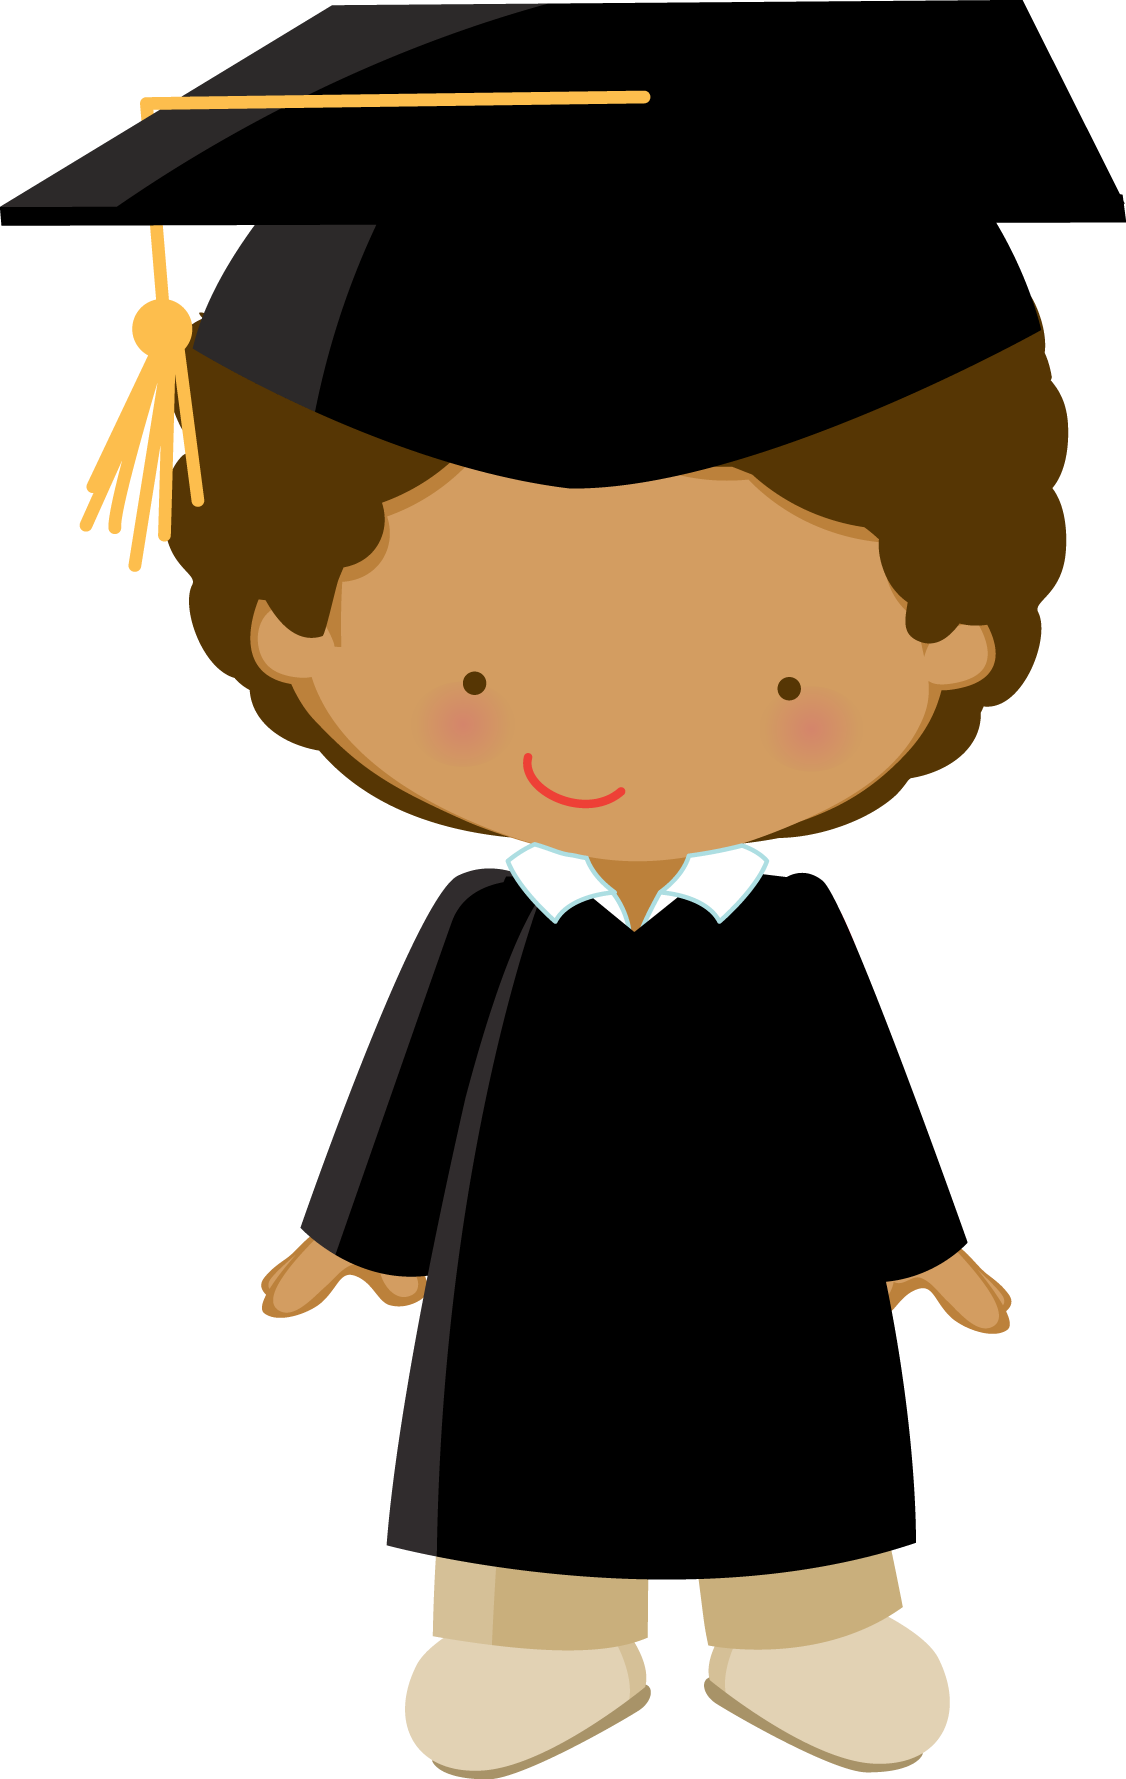 Paper clipart graduation. Little graduate zwd boy